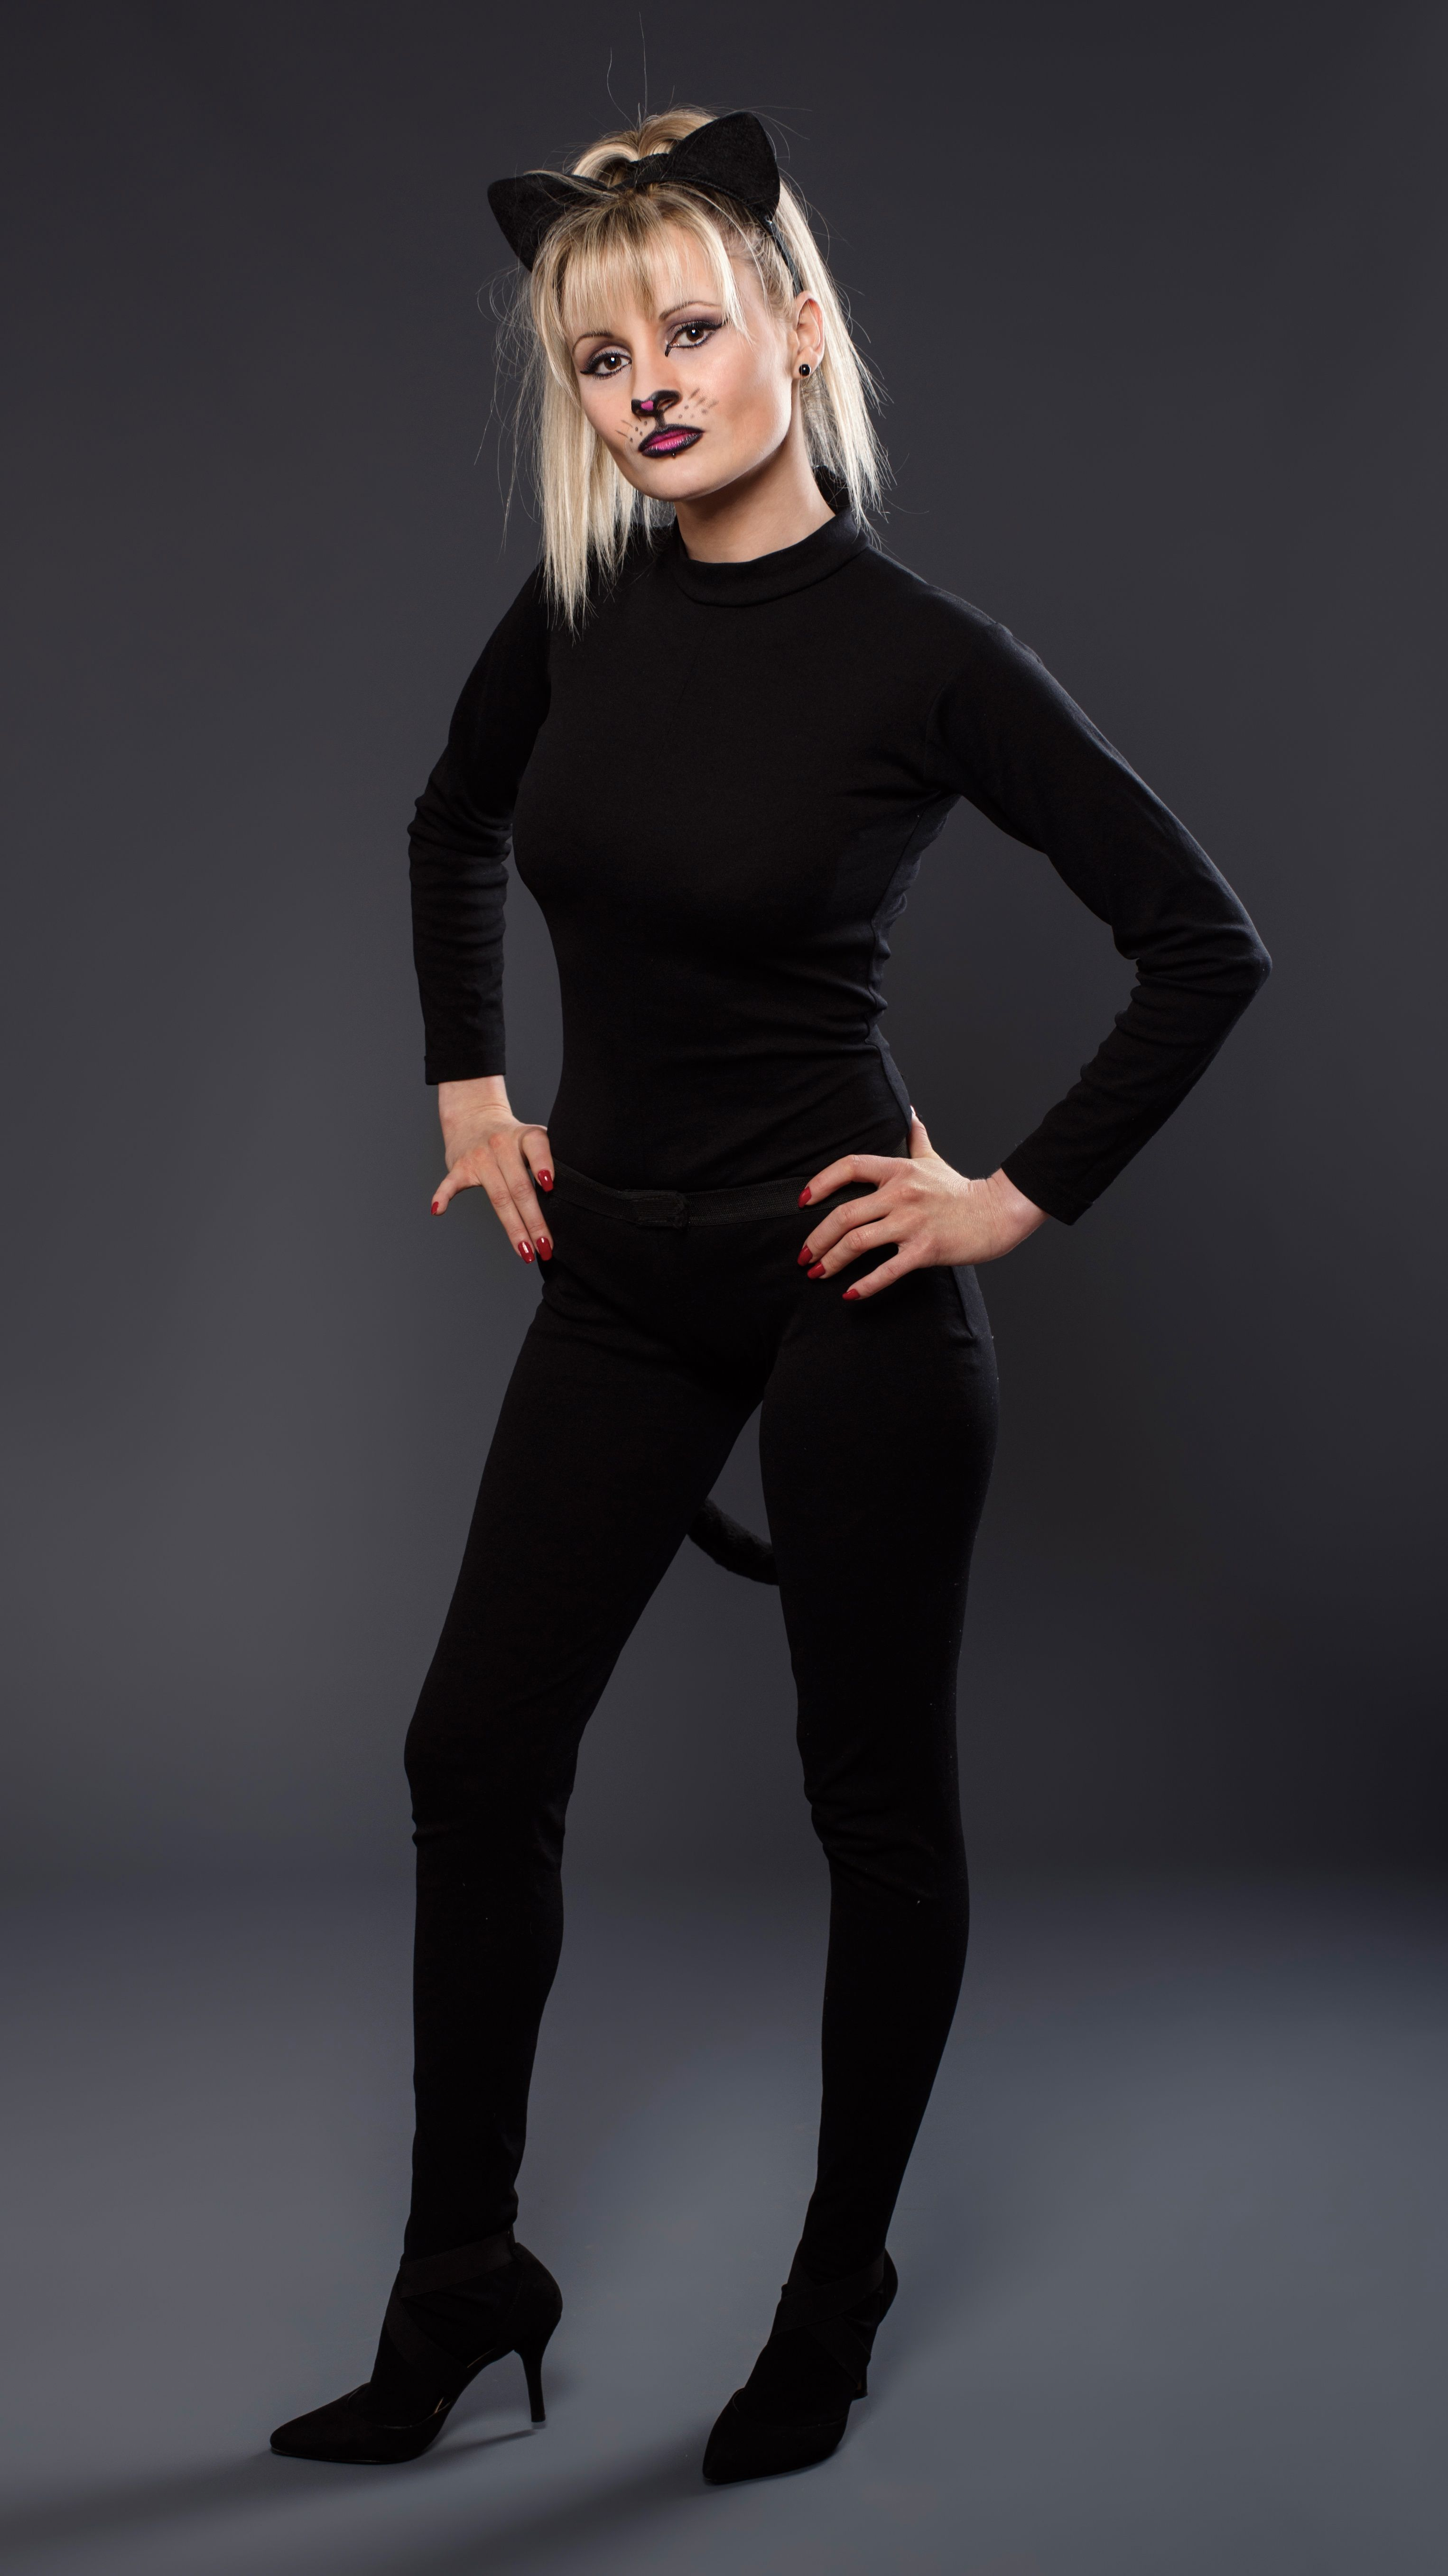 DIY Black Cat Costume for Women (Using Clothes from Your